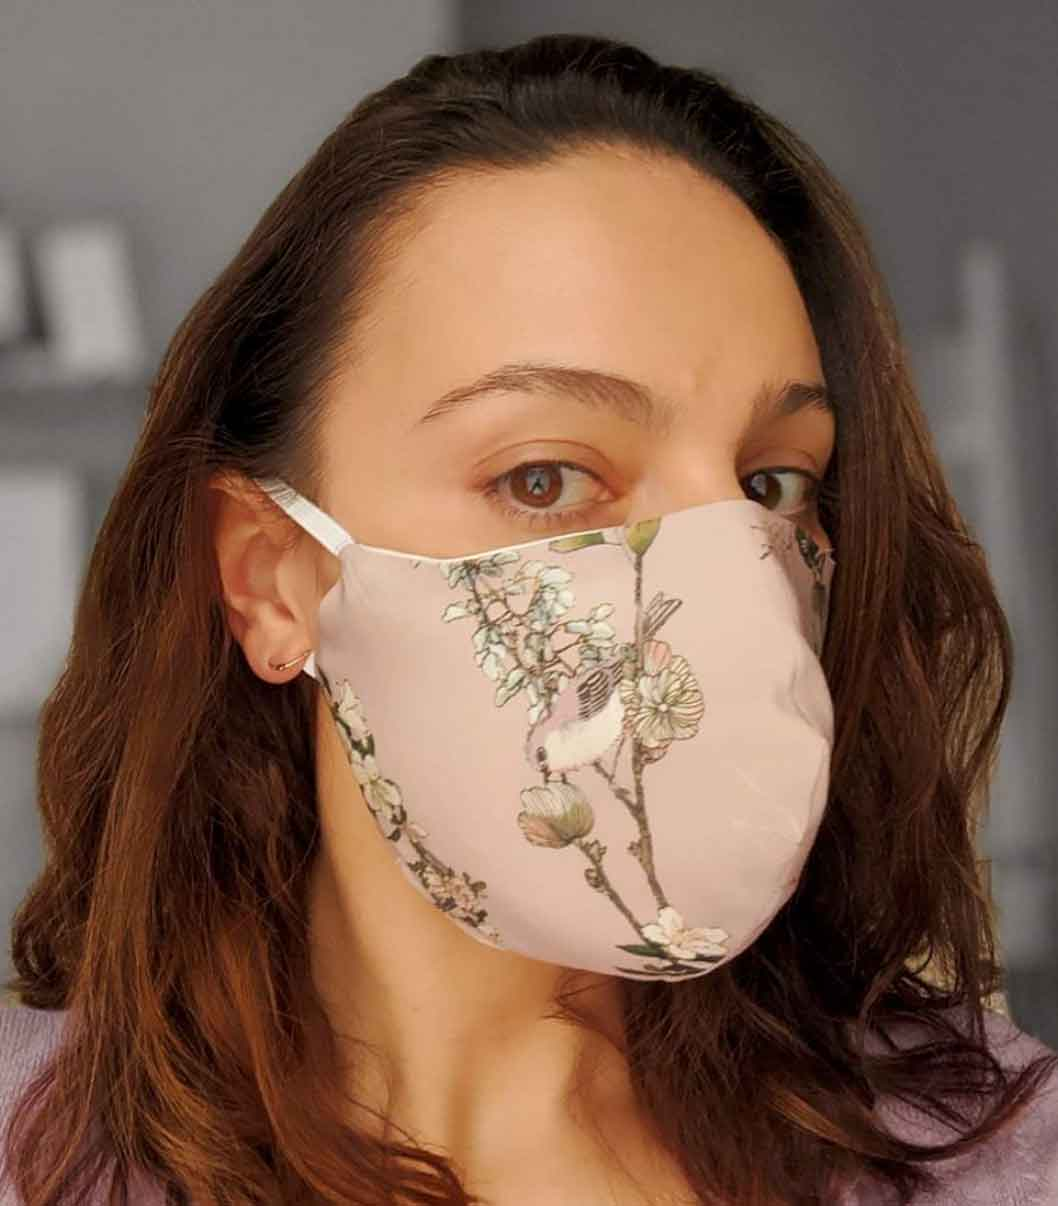 Face Mask Covid-19 Coronavirus Bozena Jankowska Sustainable Fashion